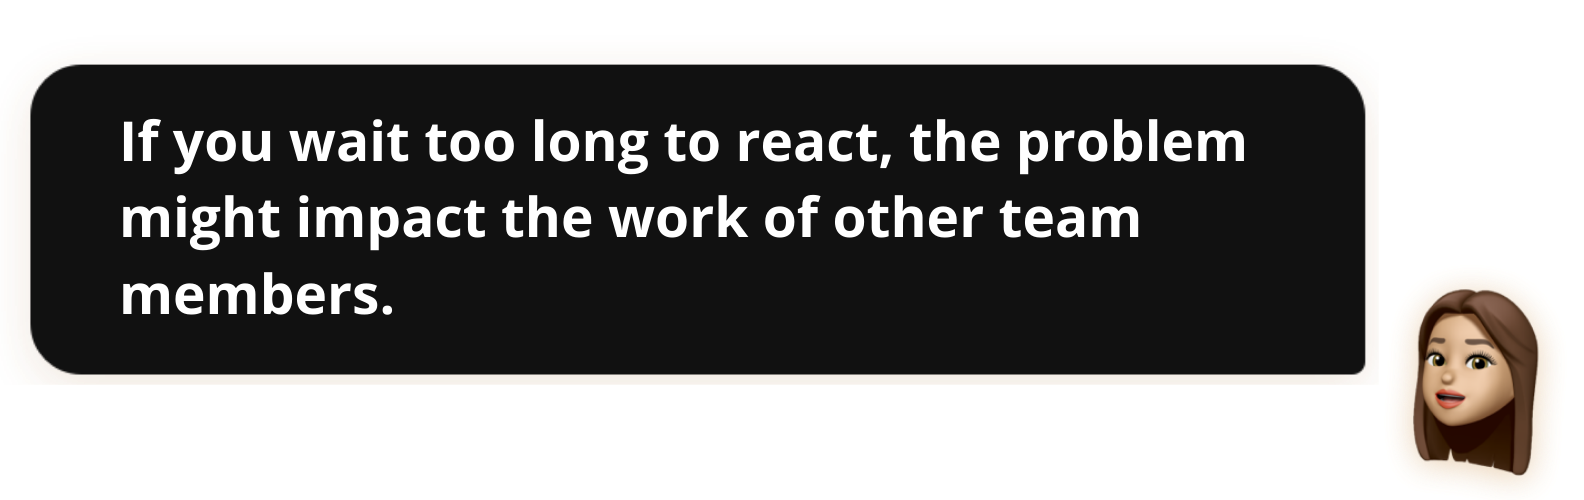 If you wait too long to react, the problem might impact the work of other team members